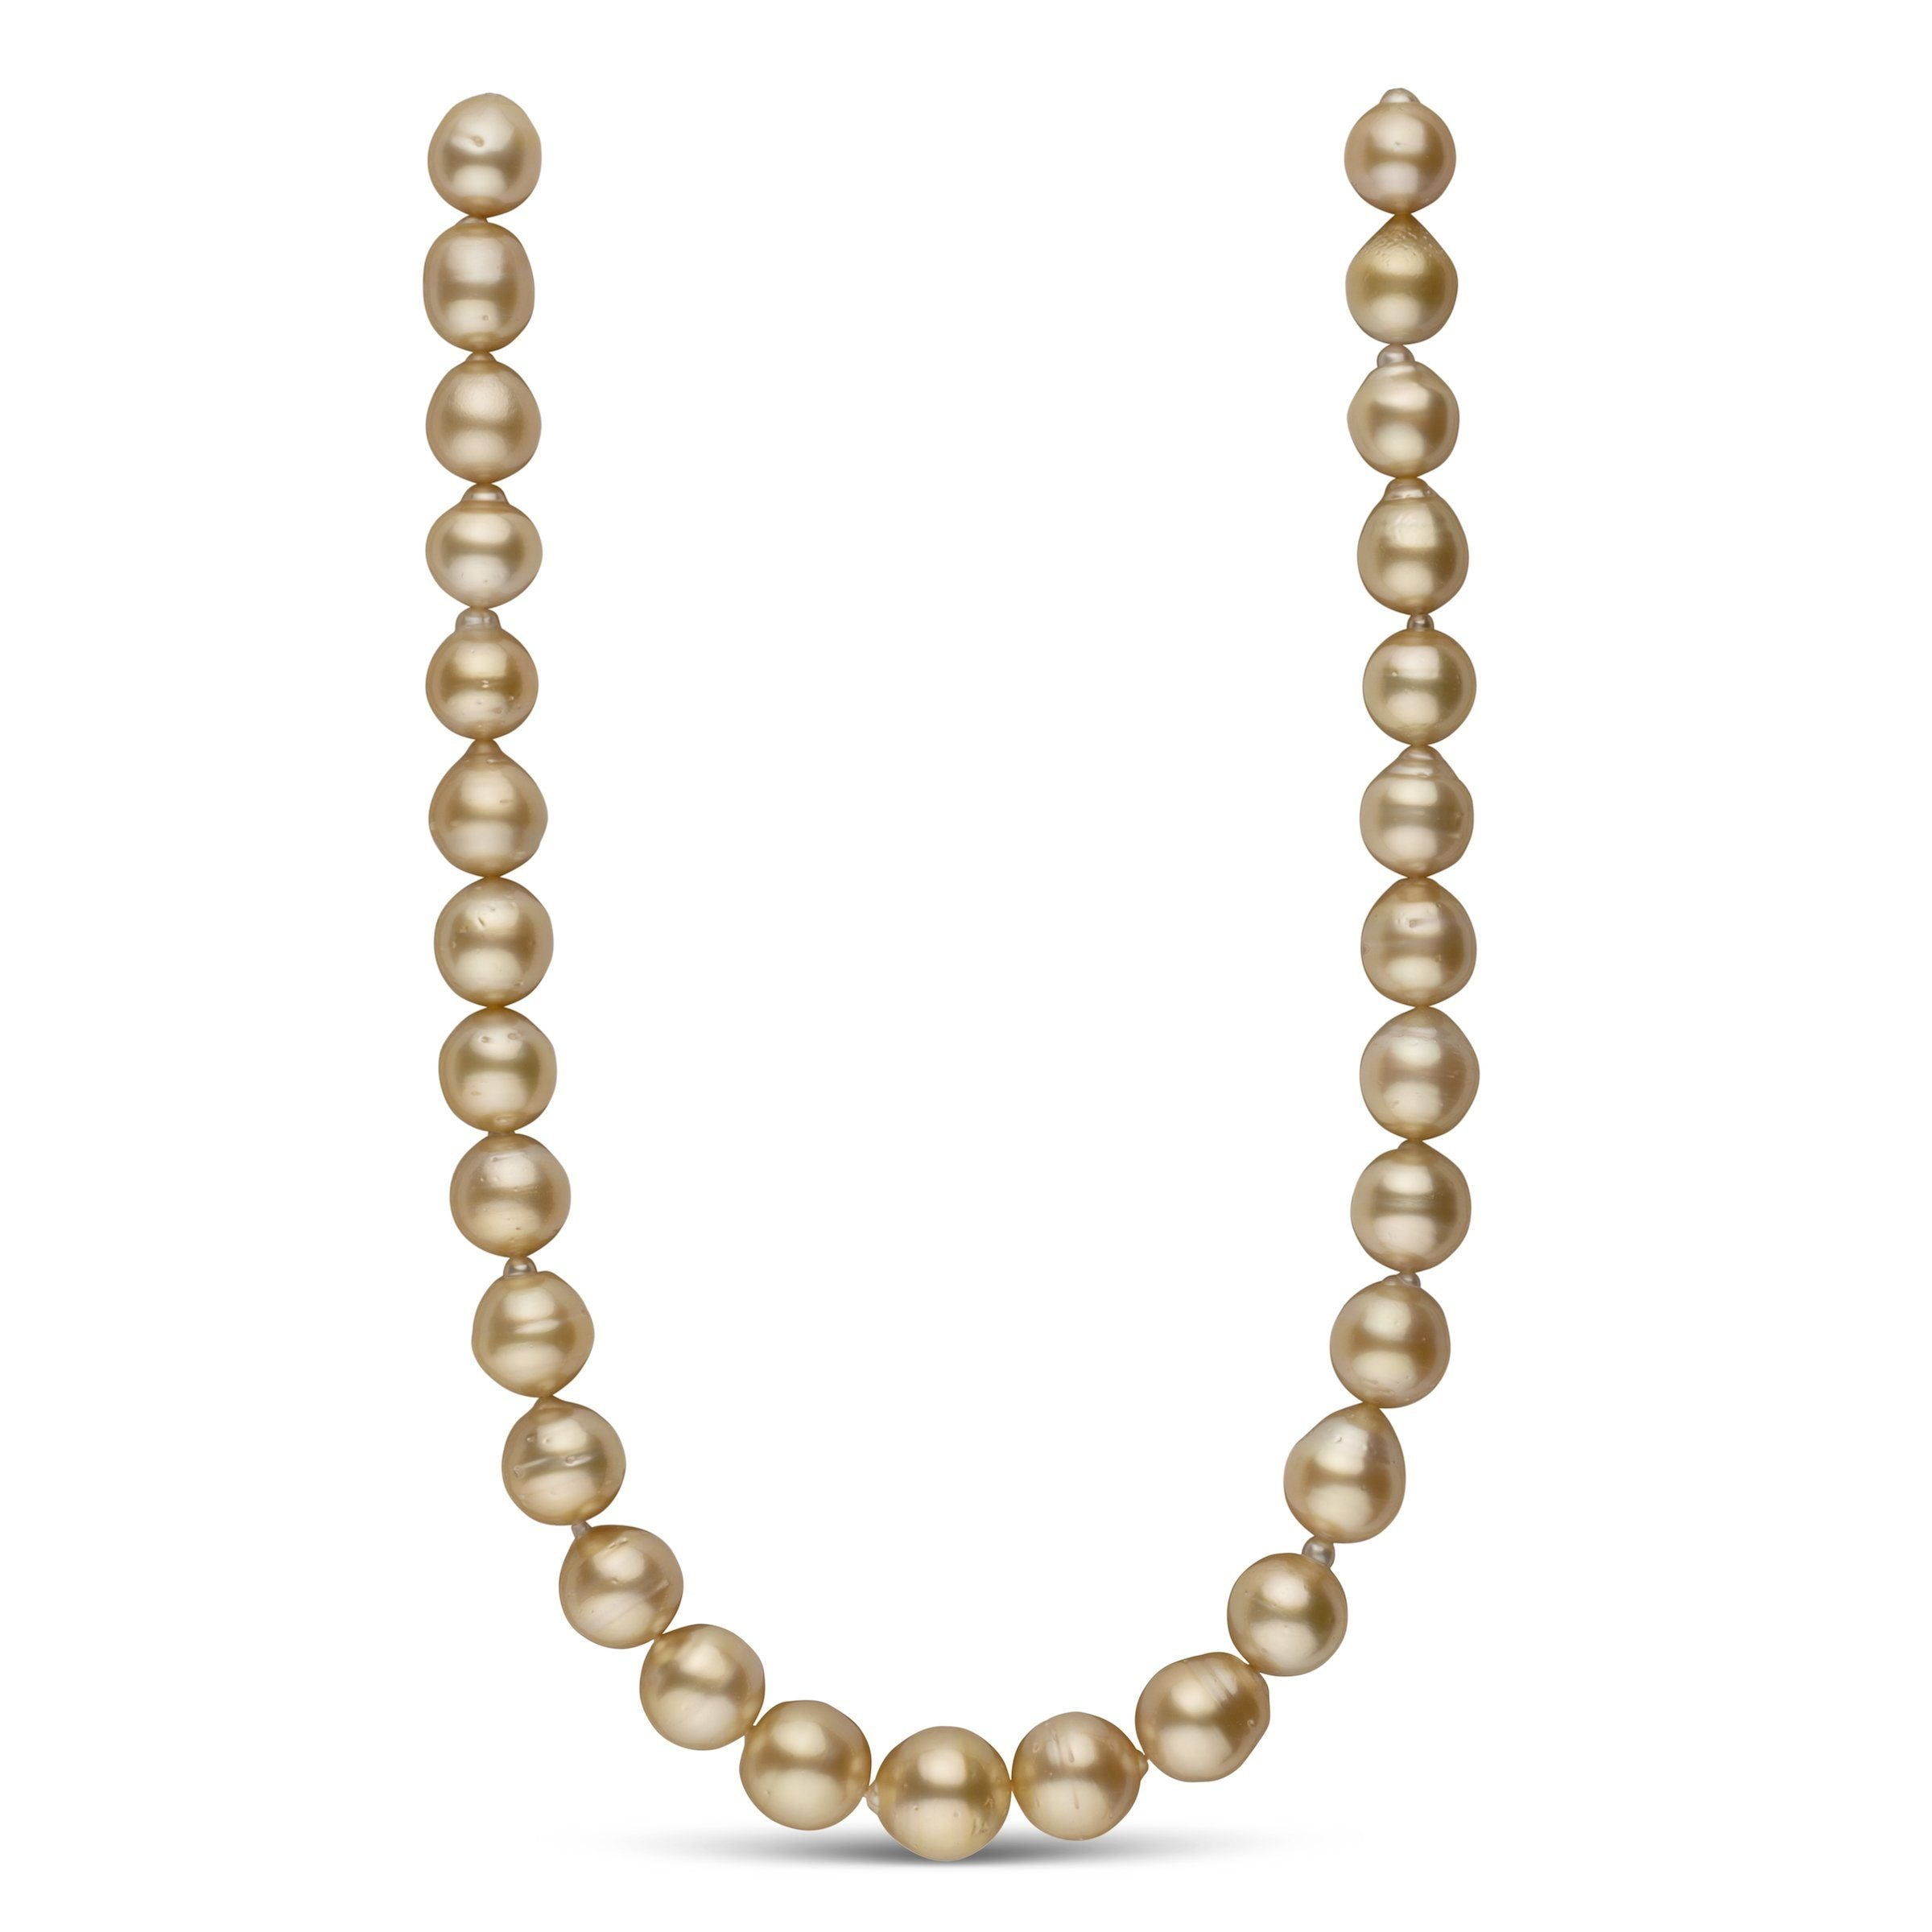 12.1-14.5 mm AA+ Golden South Sea Baroque Necklace